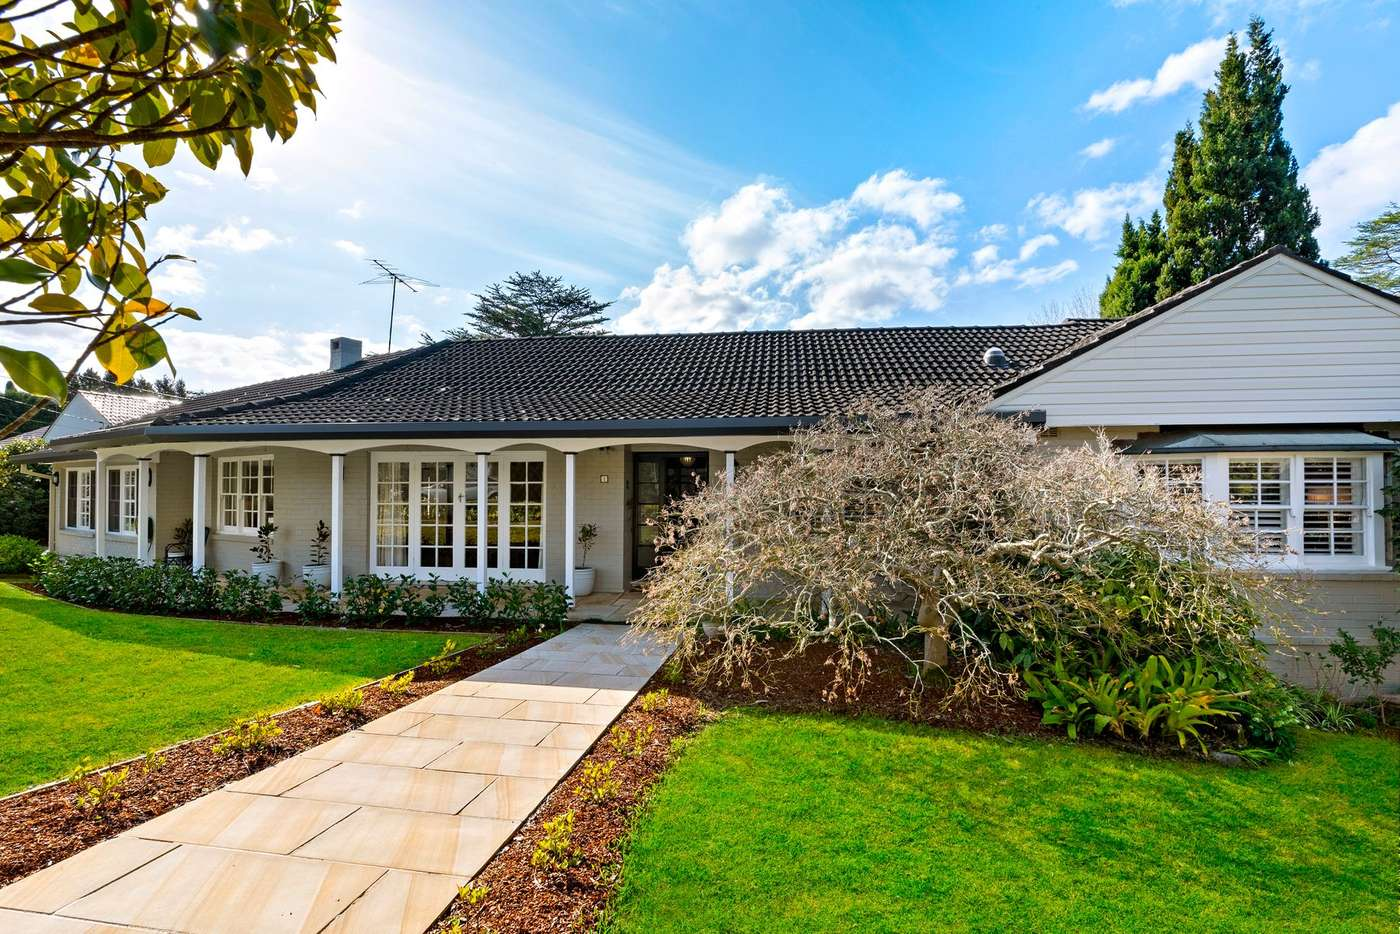 Main view of Homely house listing, 1 Binnowee Ave, St Ives NSW 2075